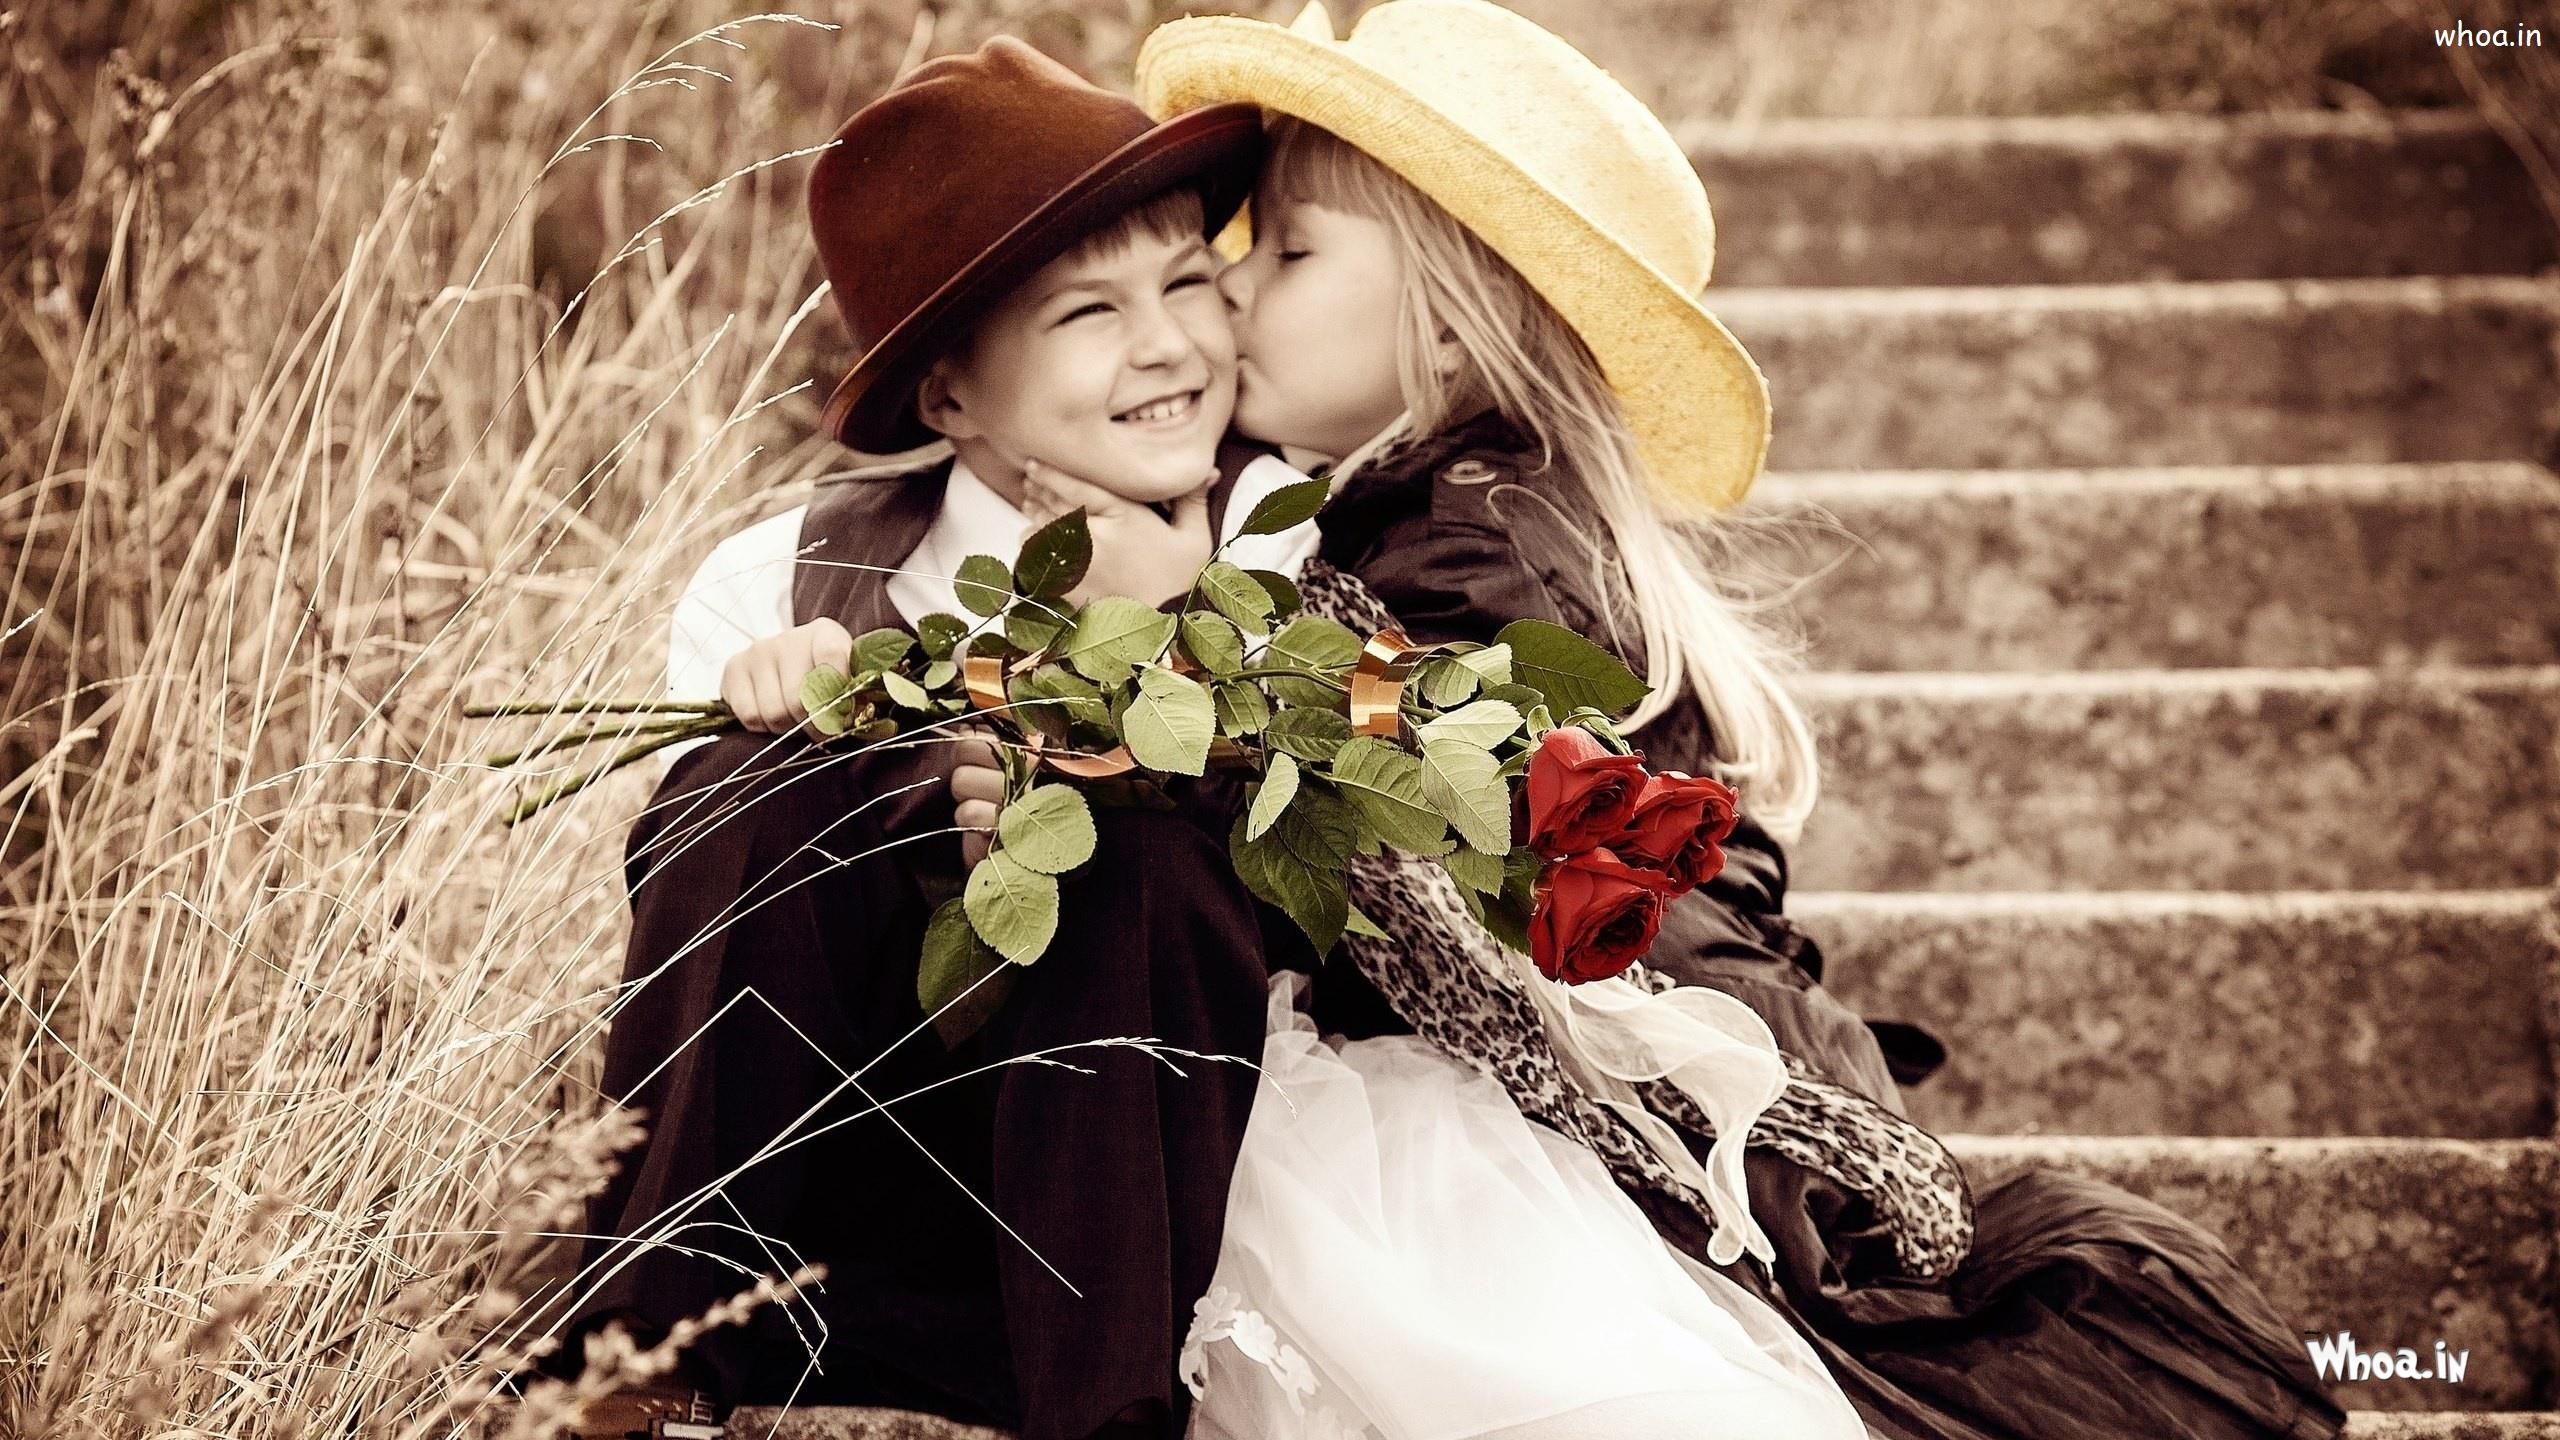 Love Couple Wallpapers | Romantic Boy Girls 1080p HD Wallpapers ...